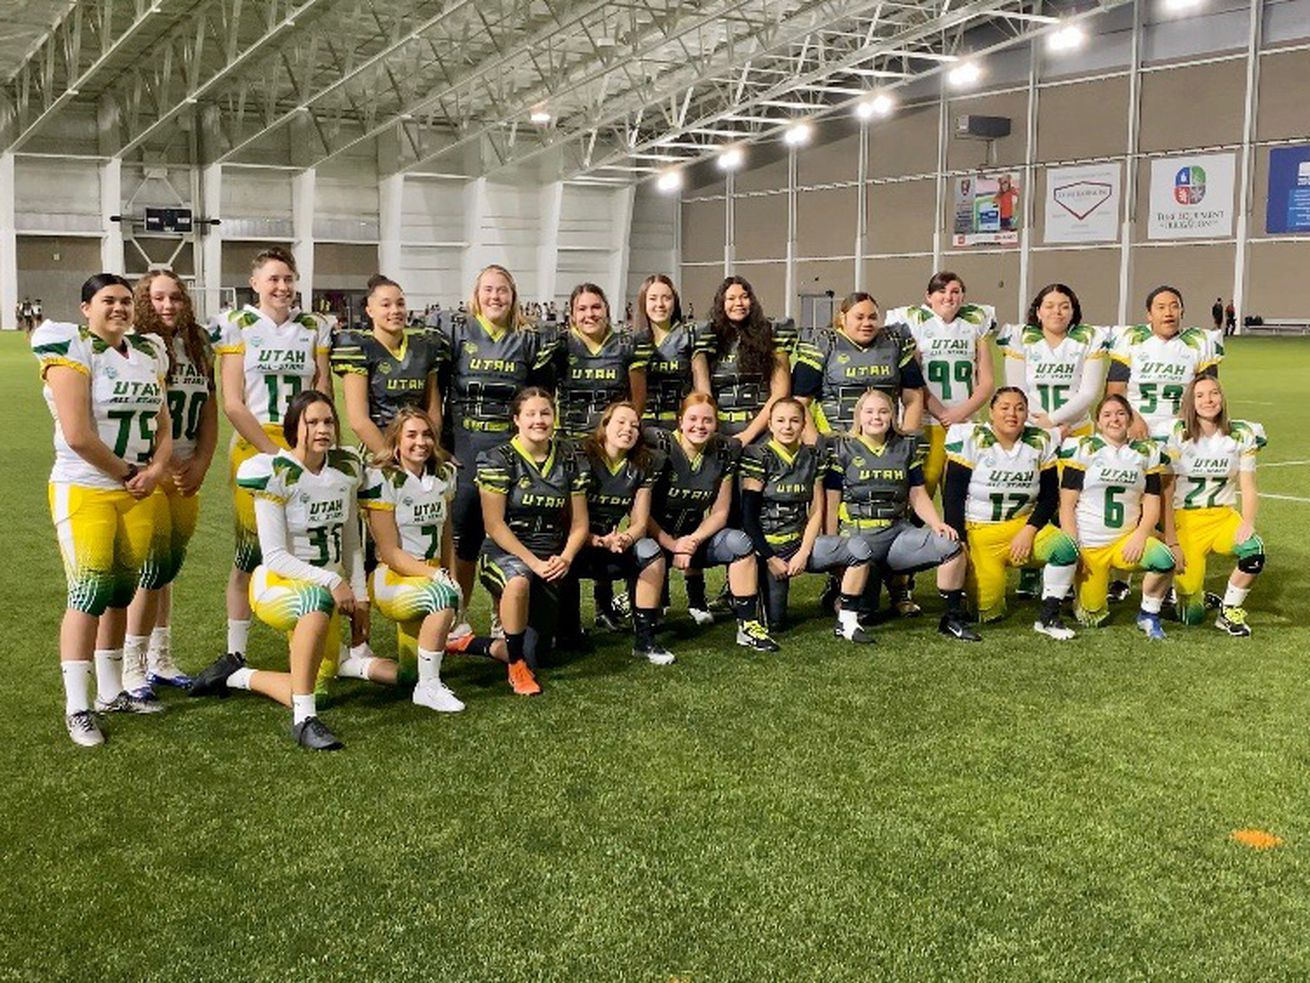 Players From Utah Girls Tackle Football League Invited To Pro Bowl In 2020 Tackle Football Football League Girl Football Player